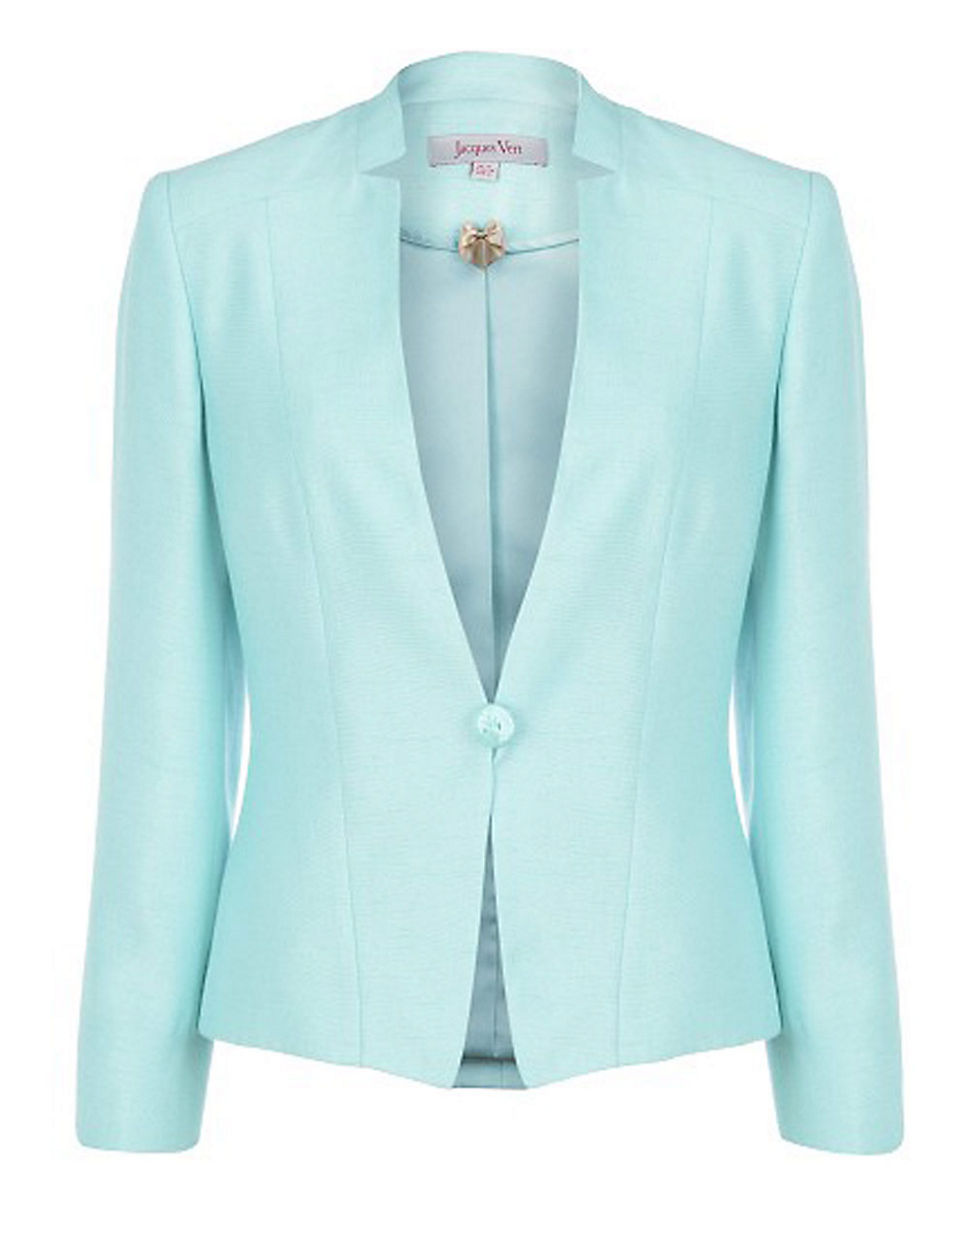 Jacques vert Mint Occasion Jacket light green 8